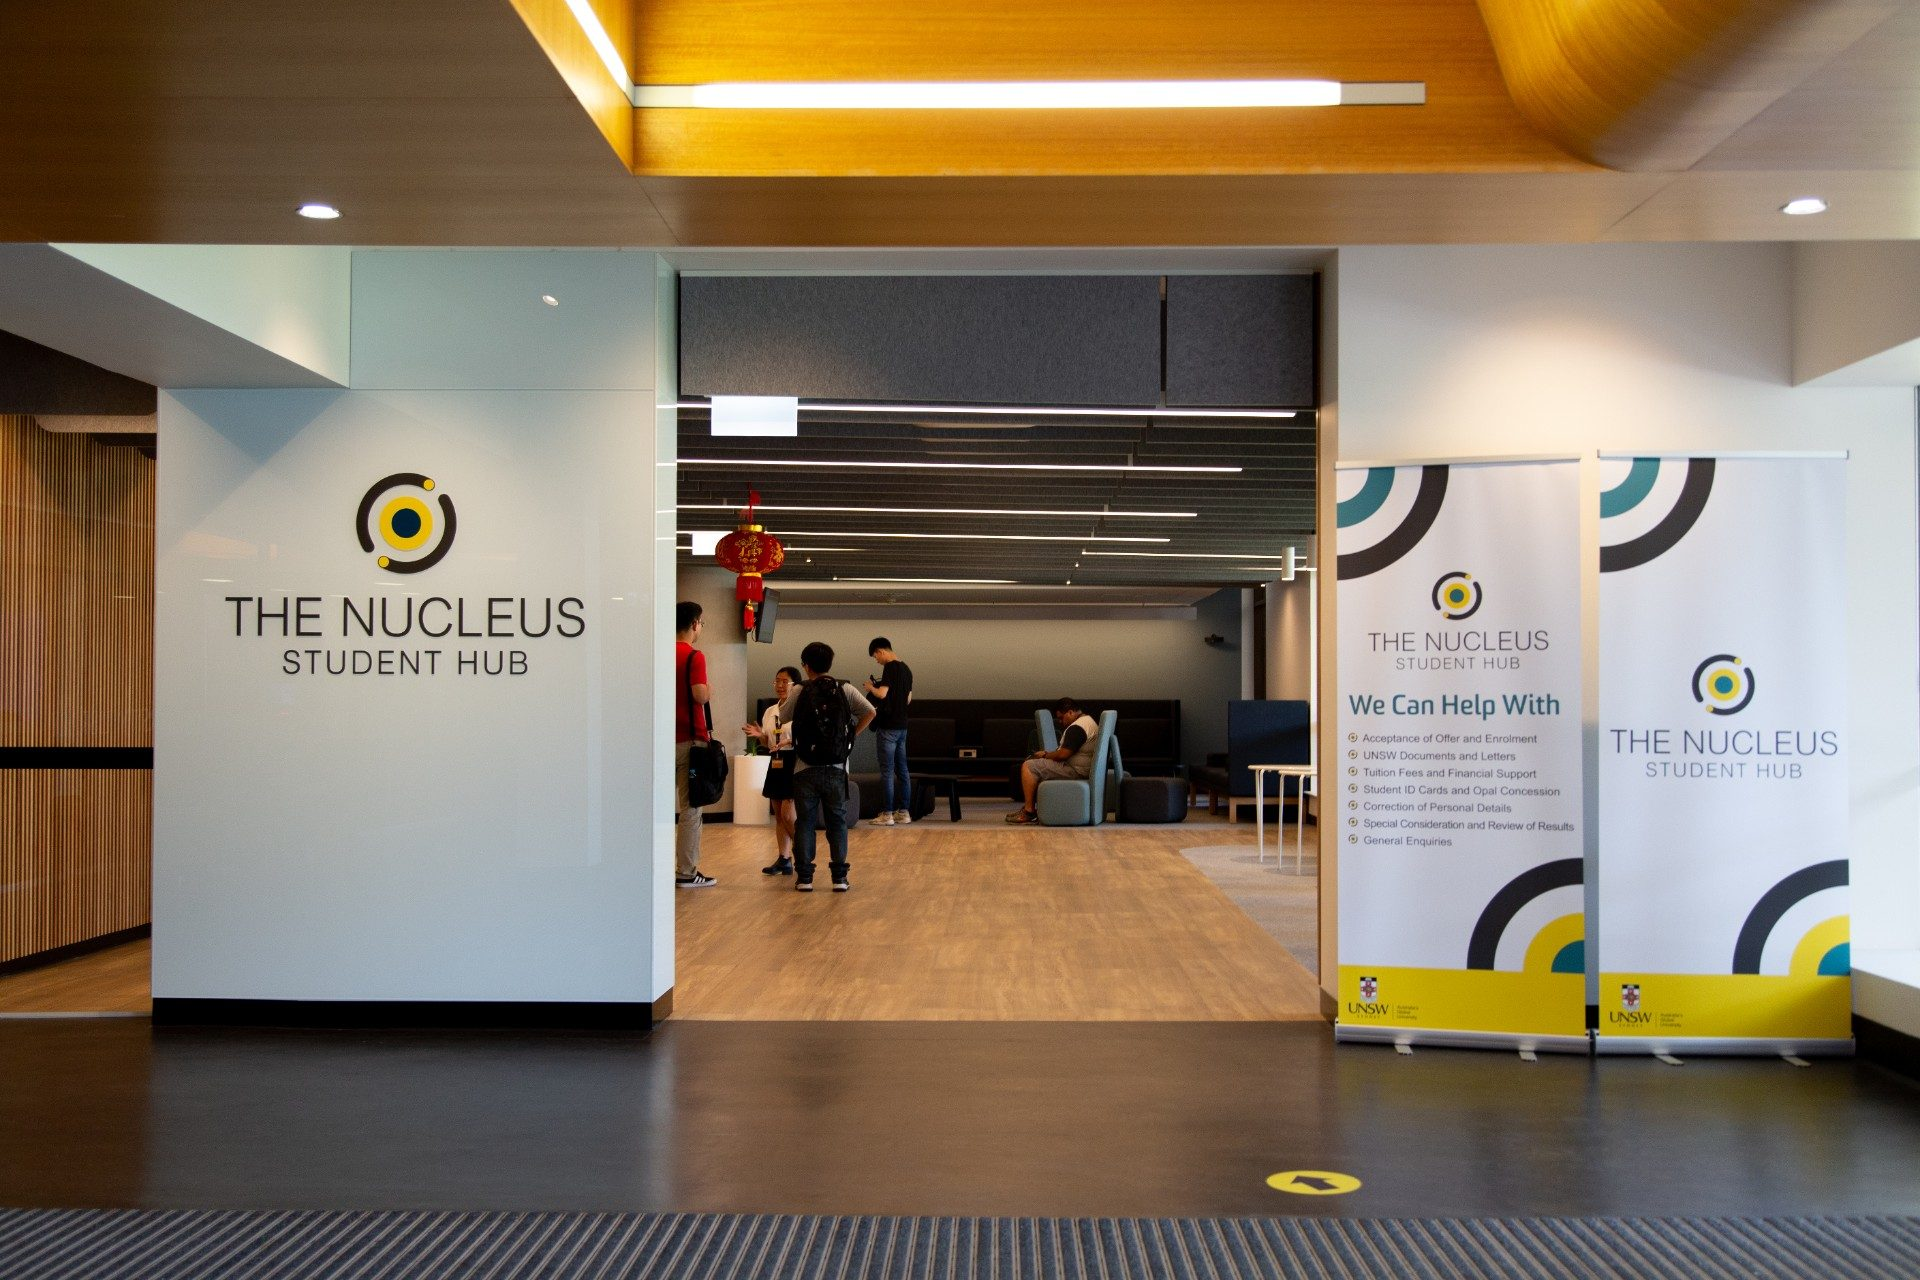 Interior of Nucleus Student Hub located on the UNSW Kensington campus